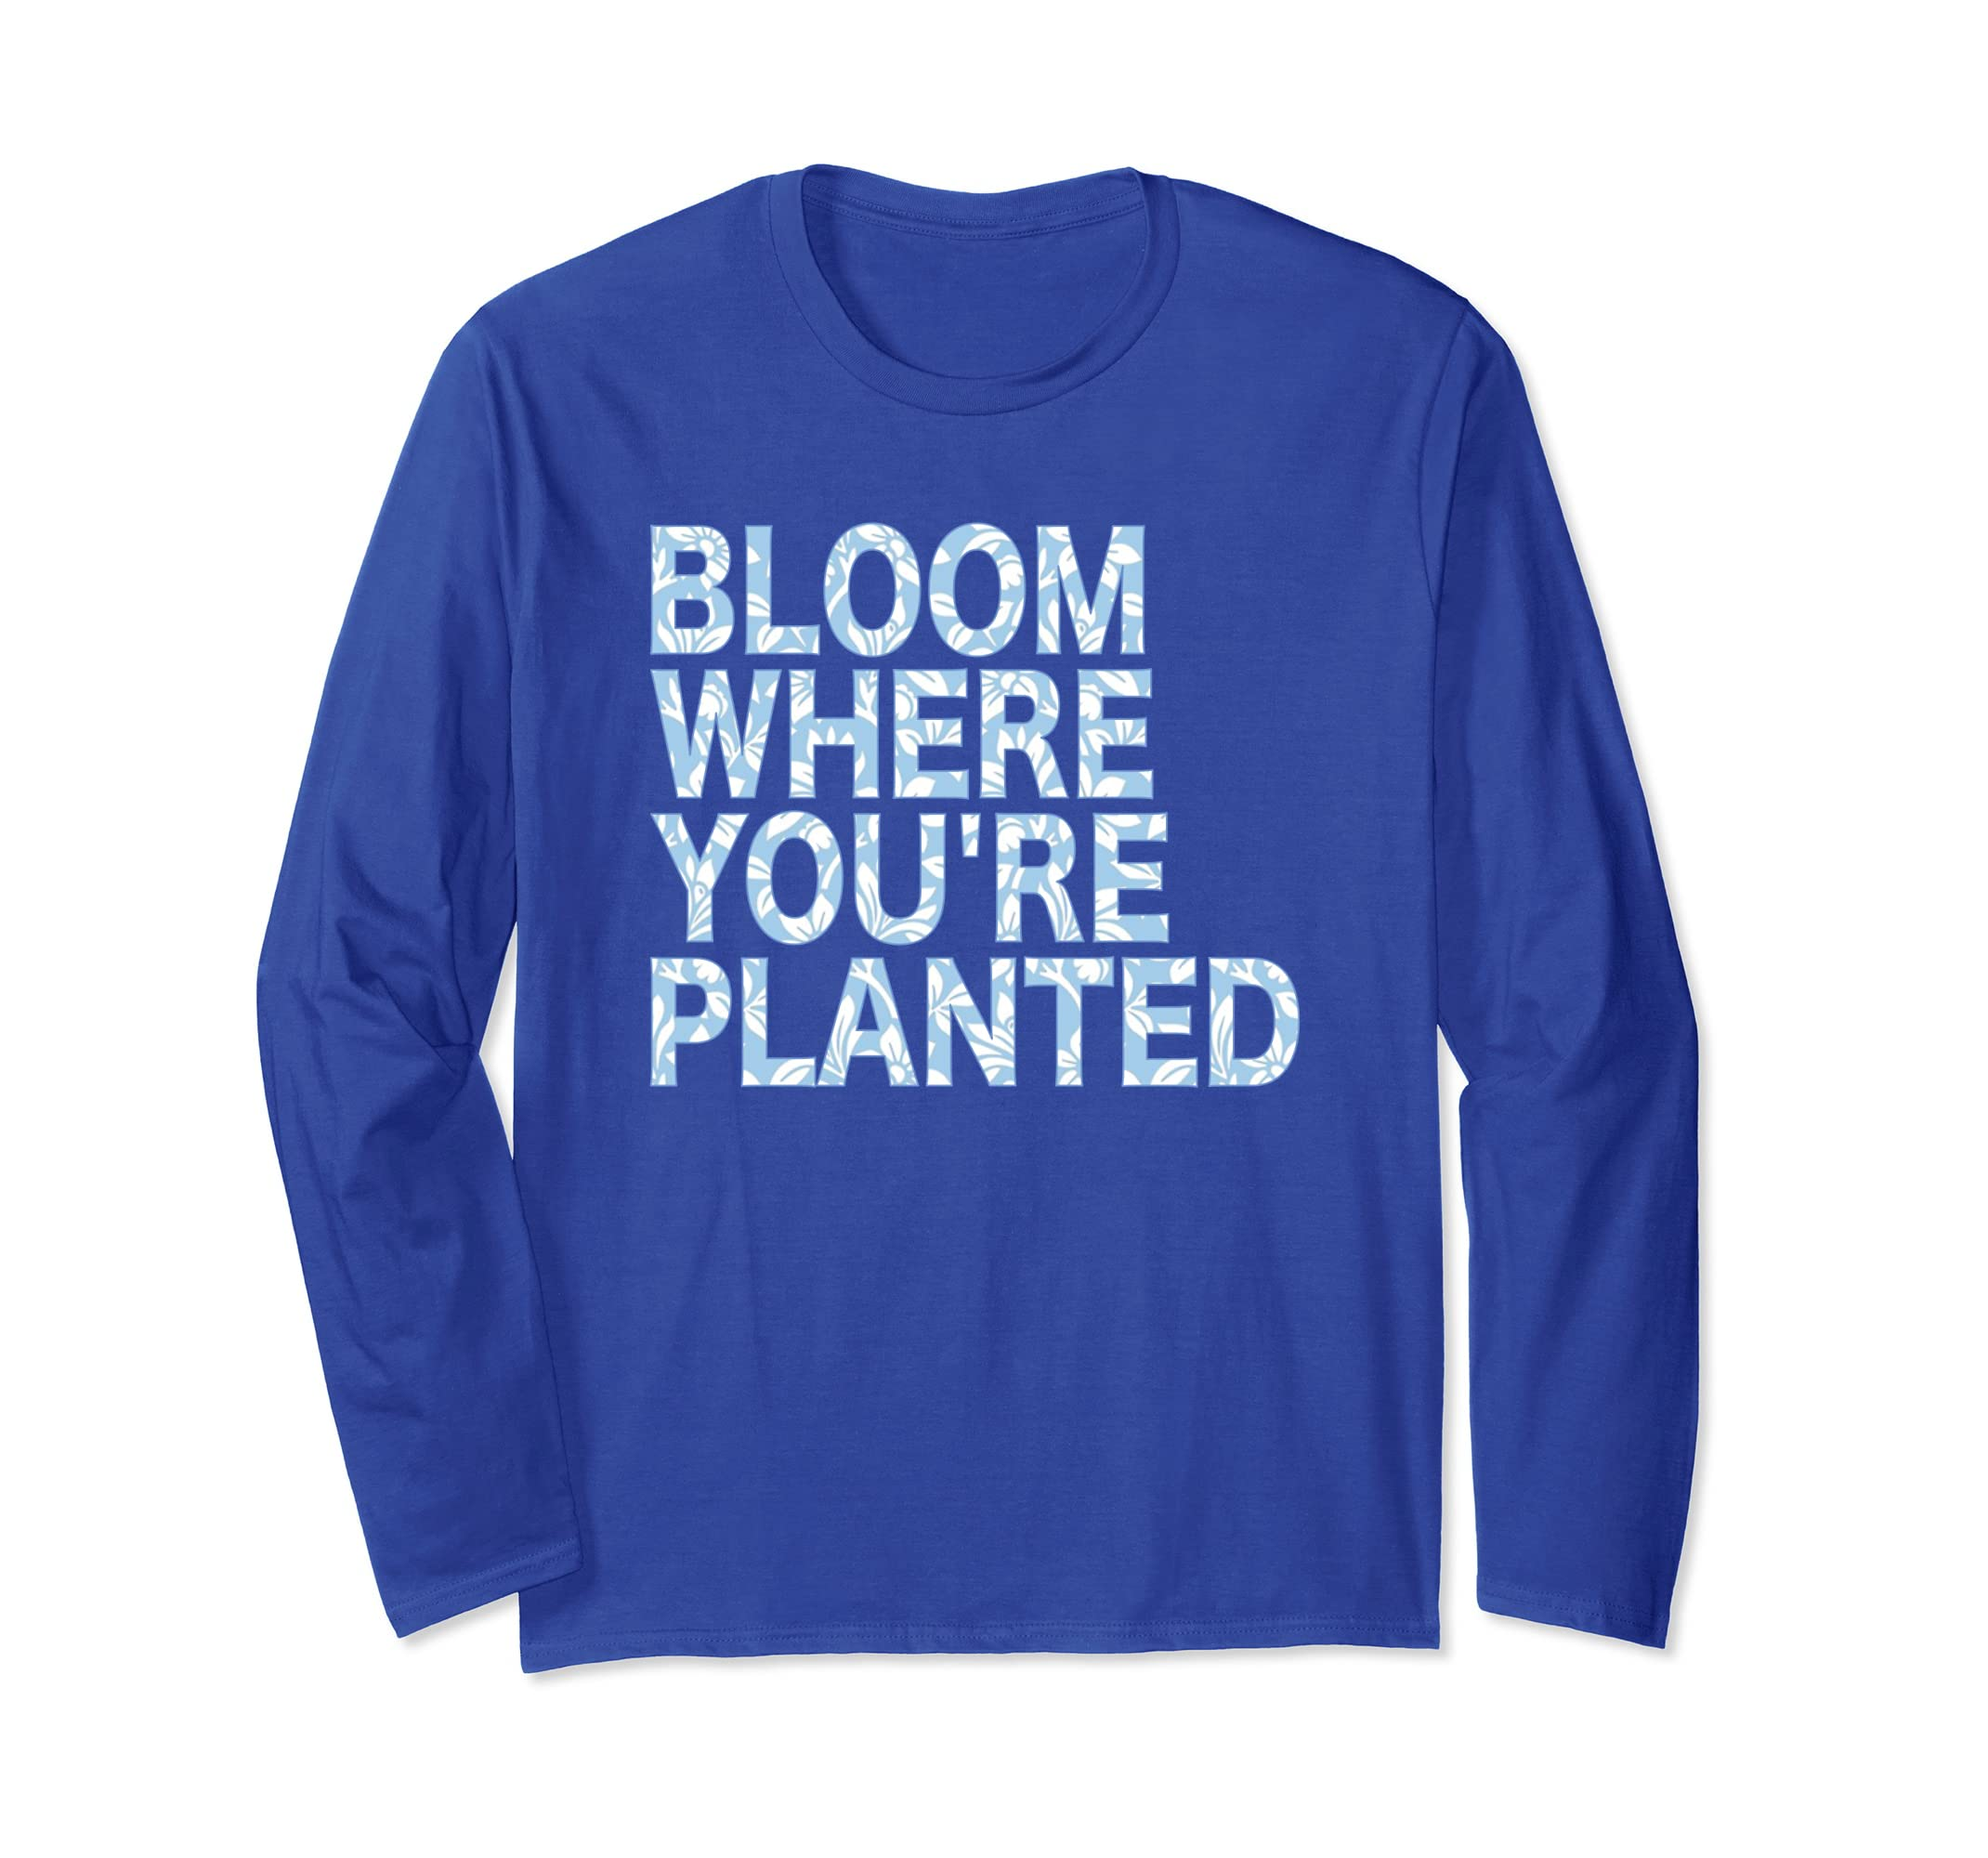 Amazon.com: Bloom Where Youre Planted T-Shirt Cute Yoga ...